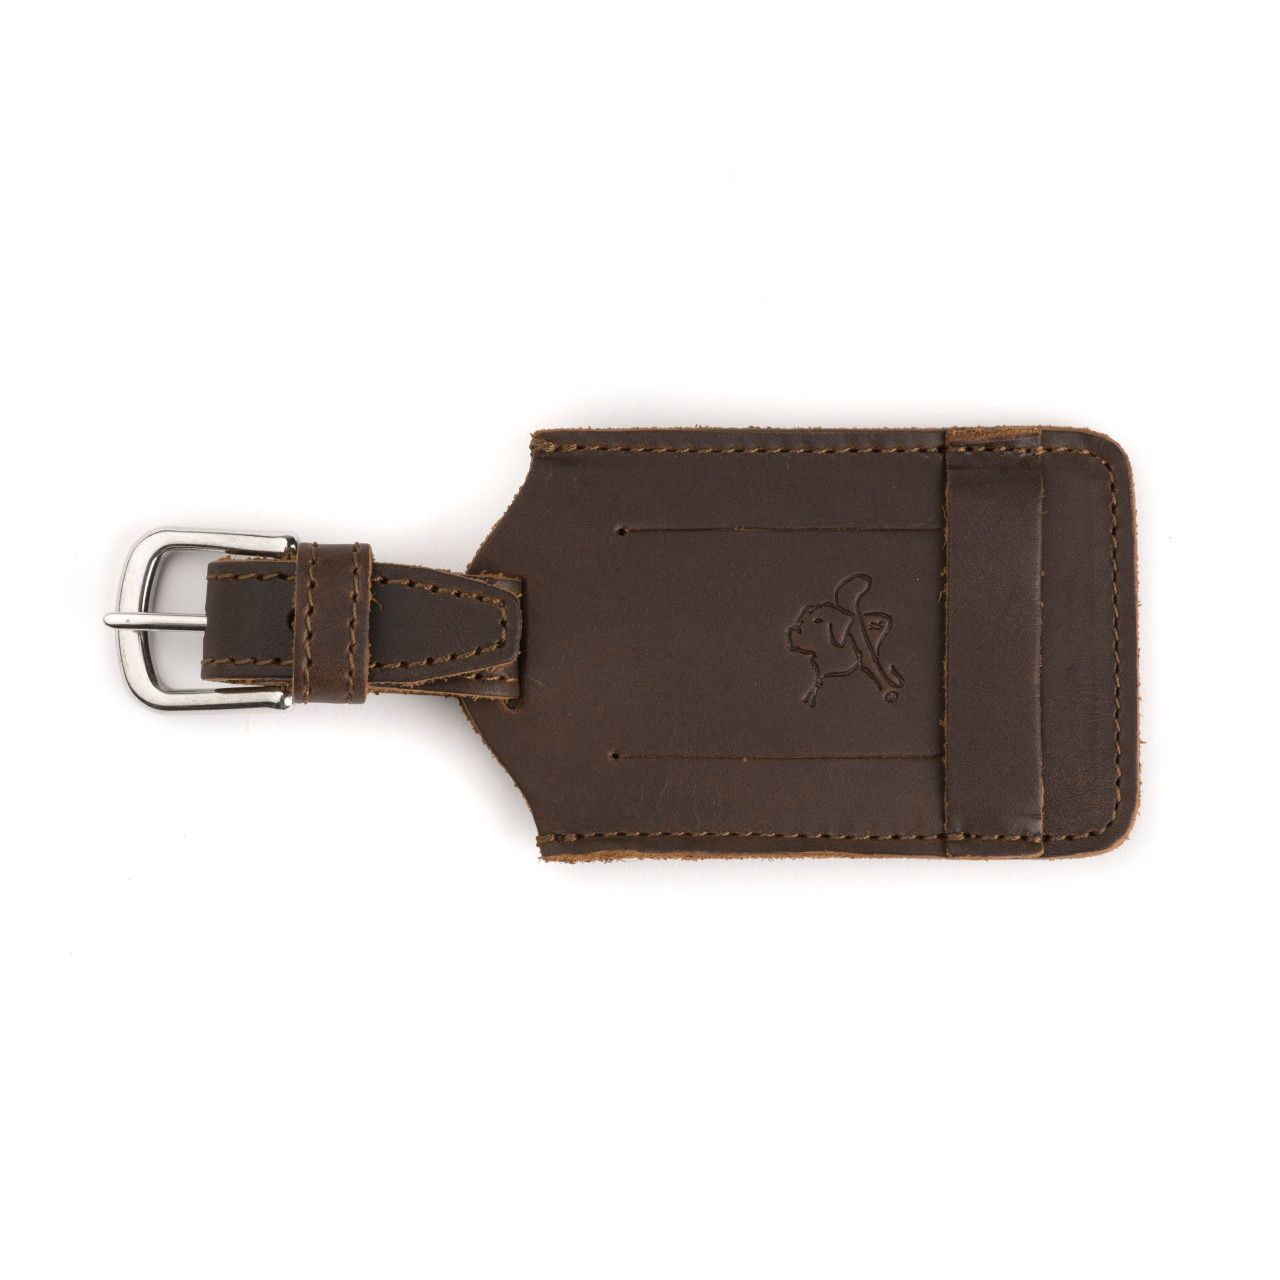 leather luggage tag in dark coffee brown leather